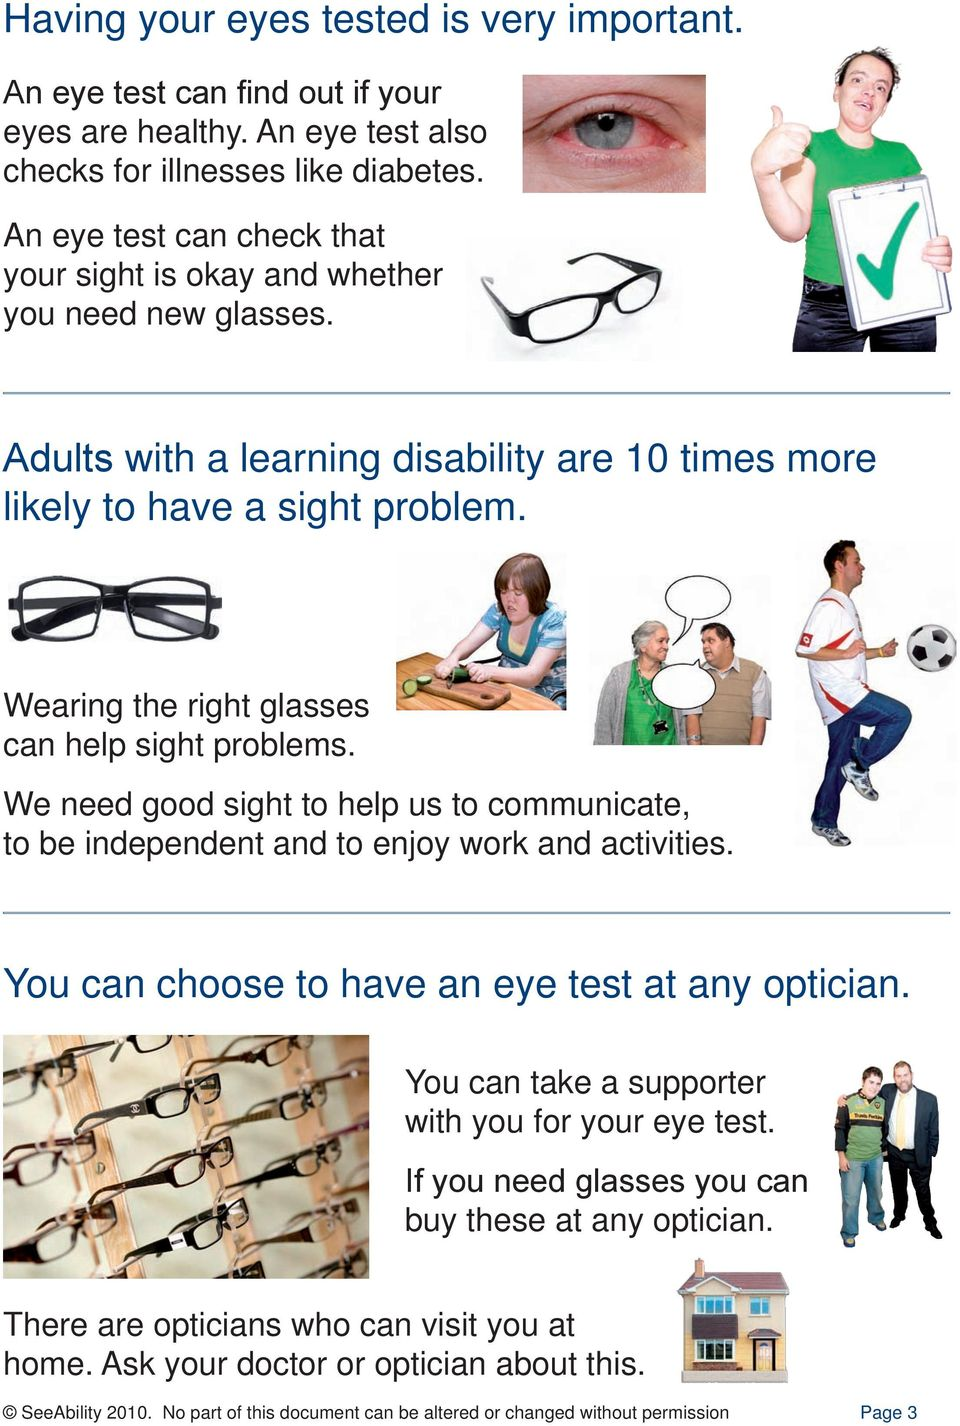 Wearing the right glasses can help sight problems. We need good sight to help us to communicate, to be independent and to enjoy work and activities. You can choose to have an eye test at any optician.